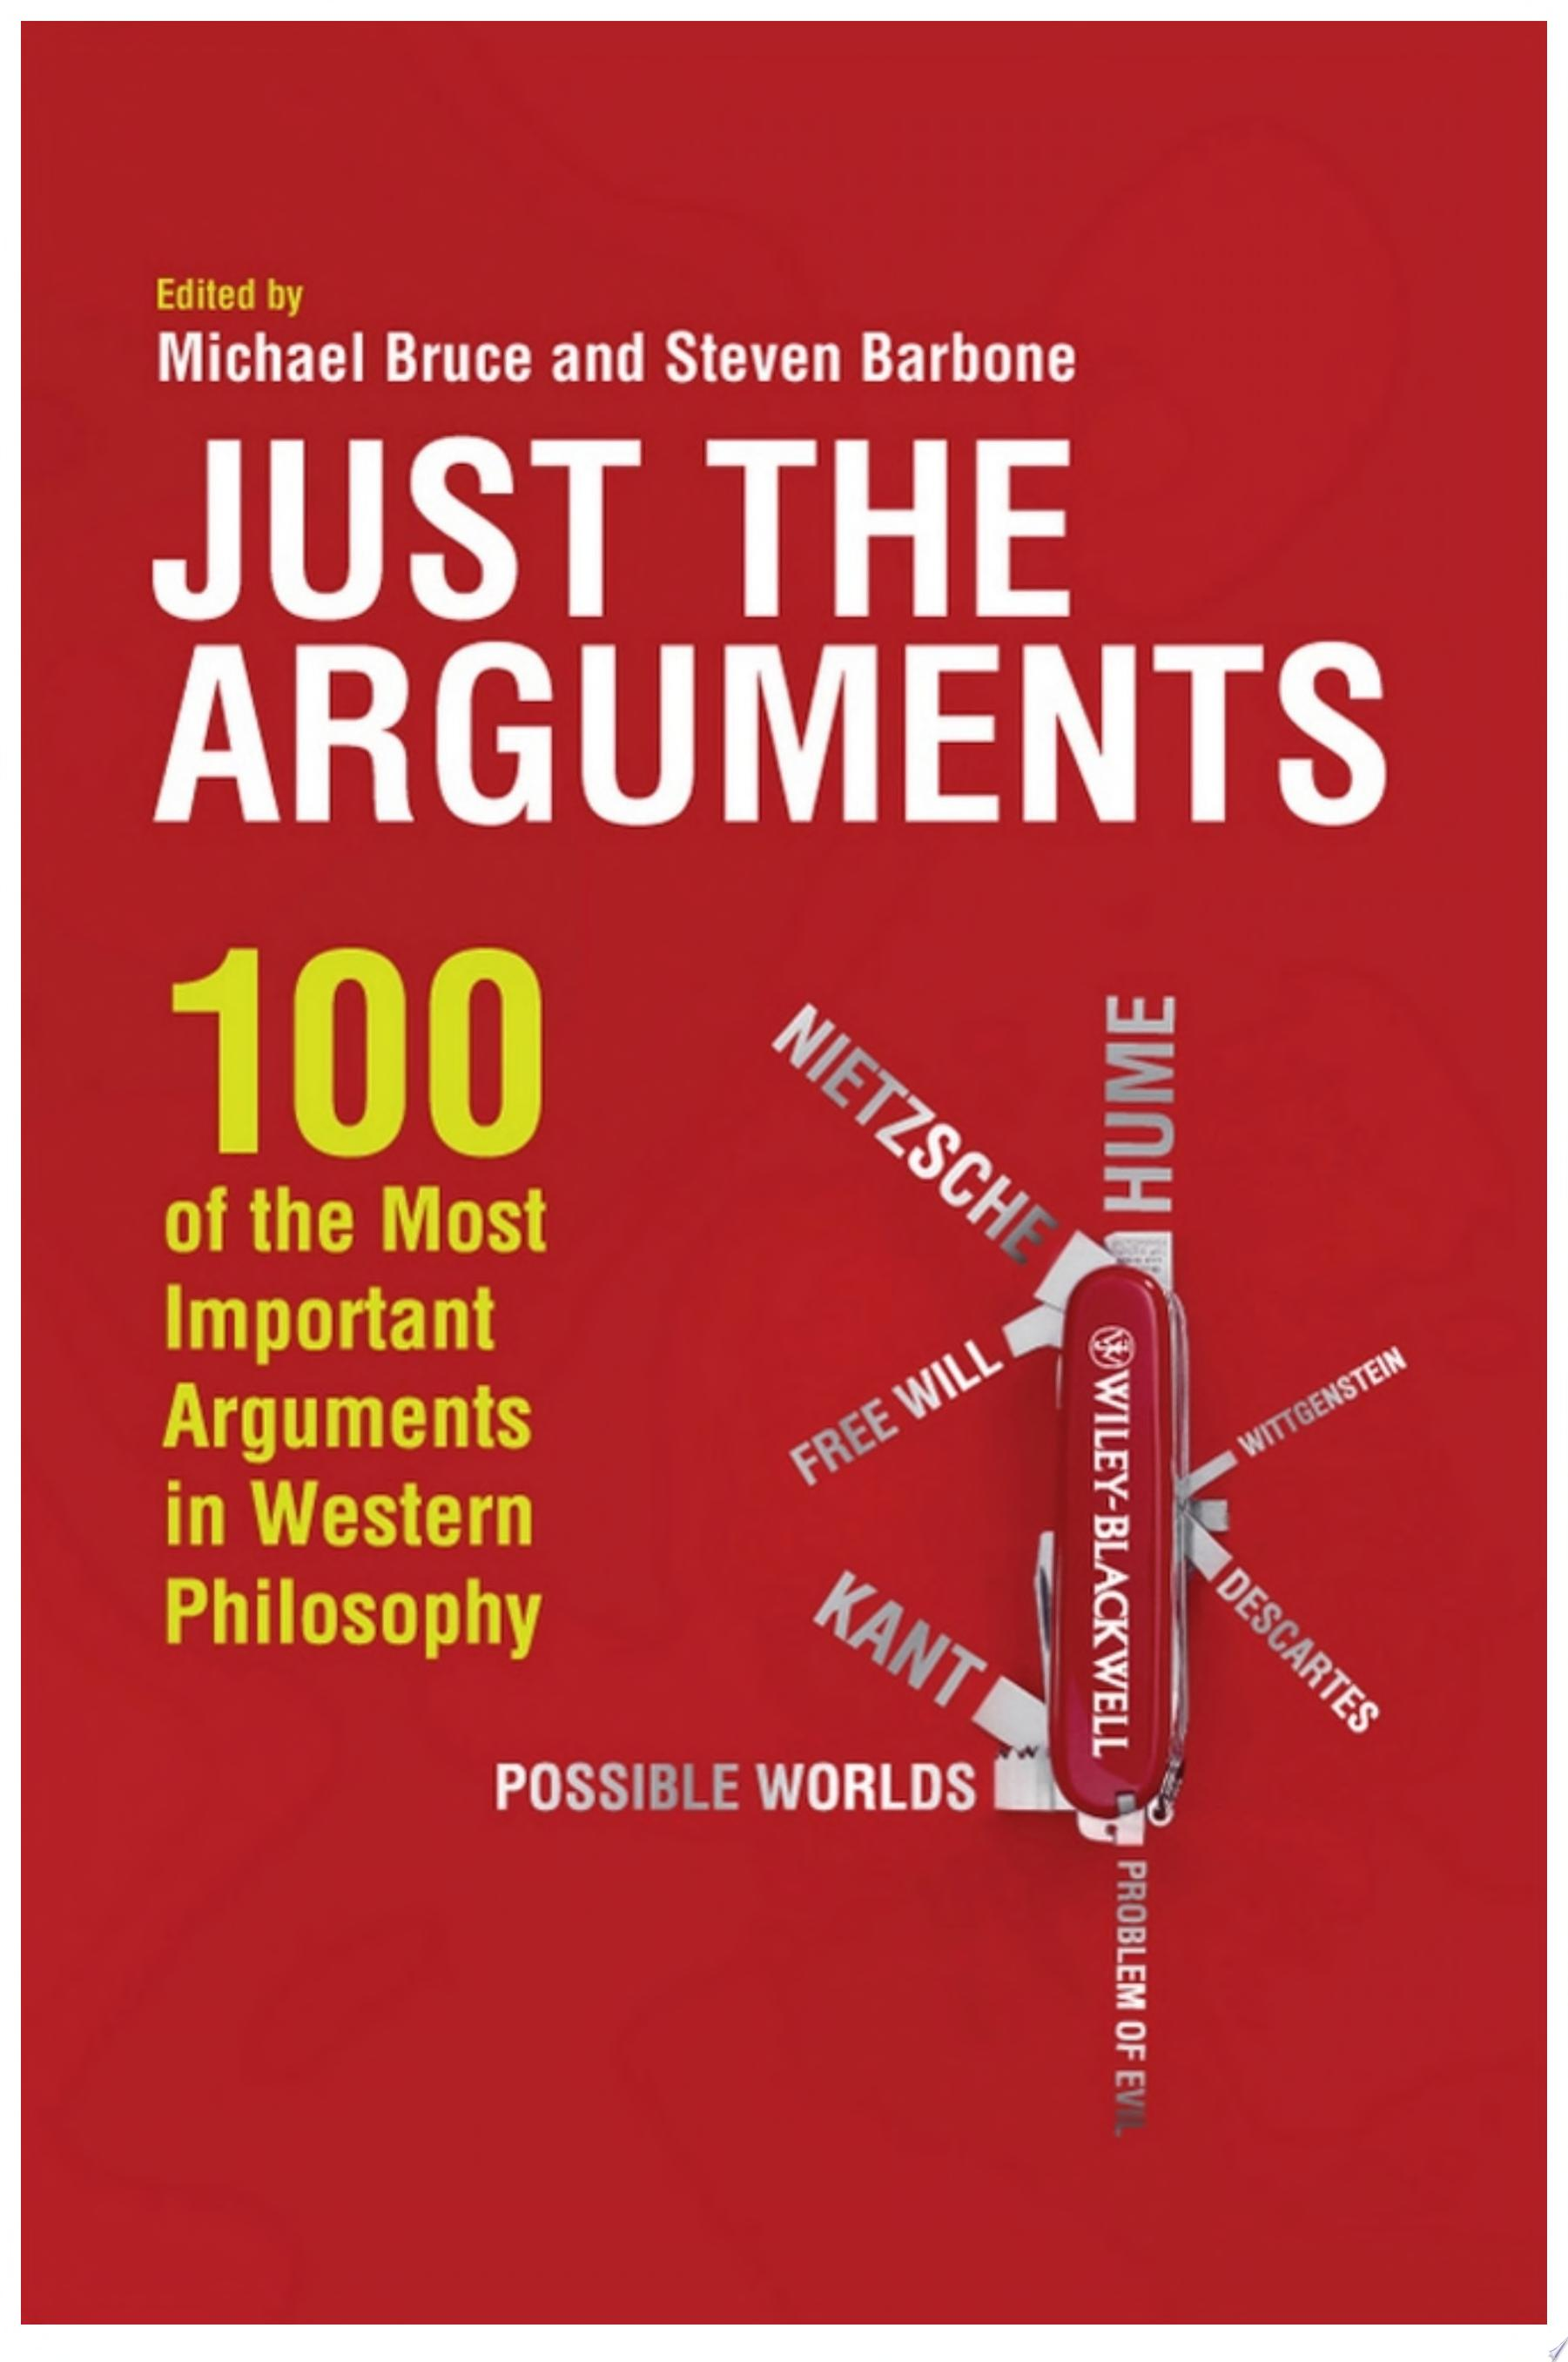 Just the Arguments